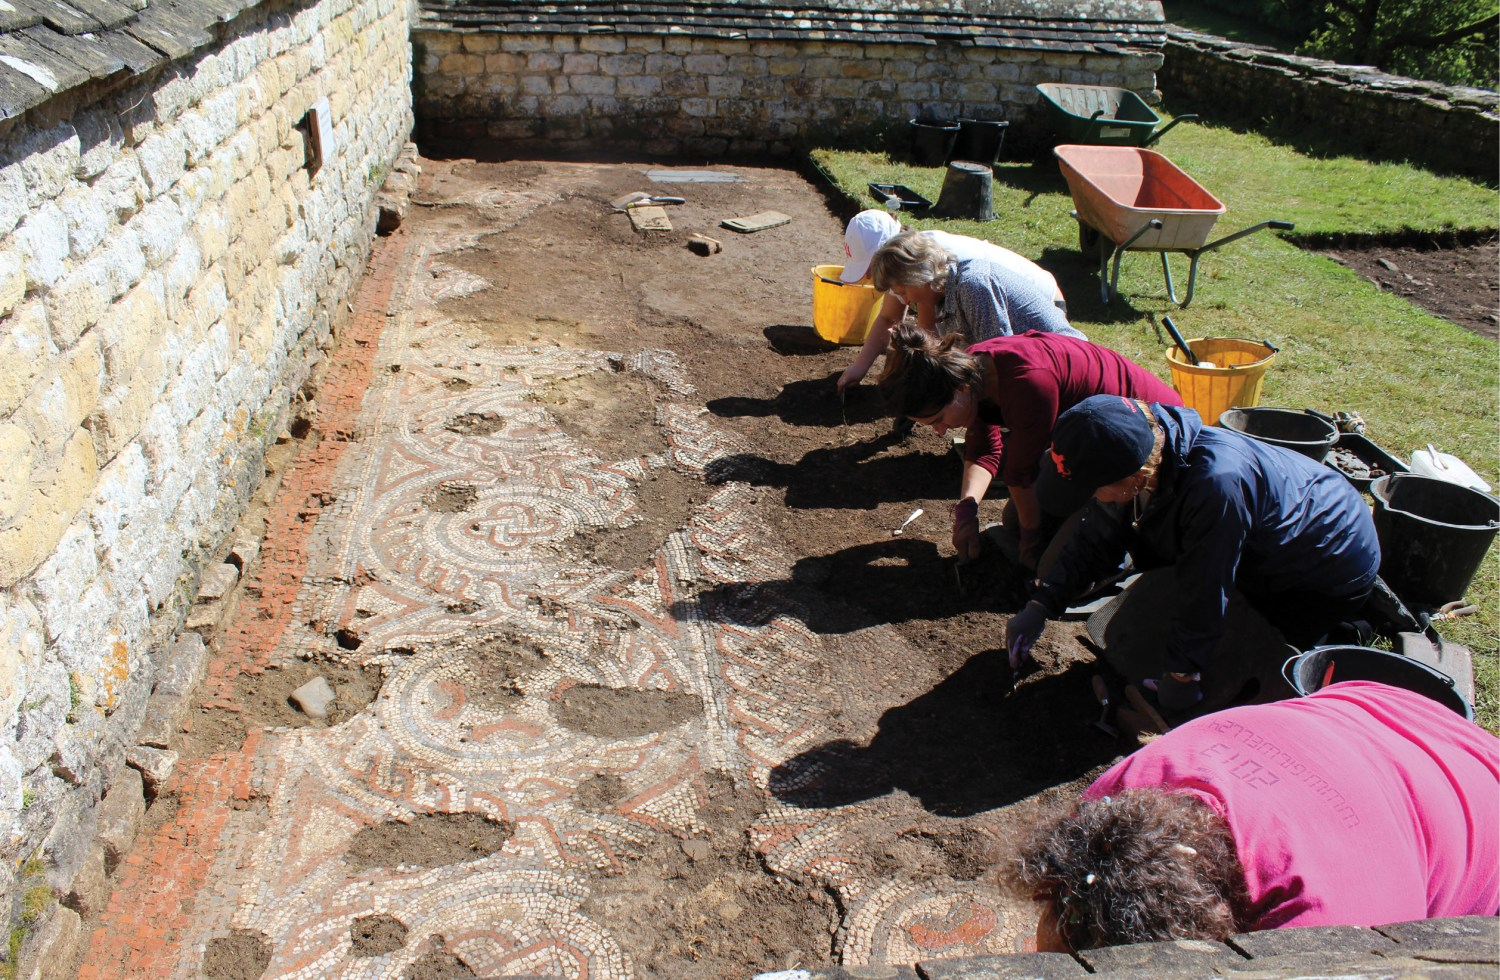 opposite Recent radiocarbon dating of materials excavated at Chedworth Roman villa in Gloucestershire suggests that this mosaic may have been laid after AD 424 which would make it Britain's first-known 5th-century mosaic.